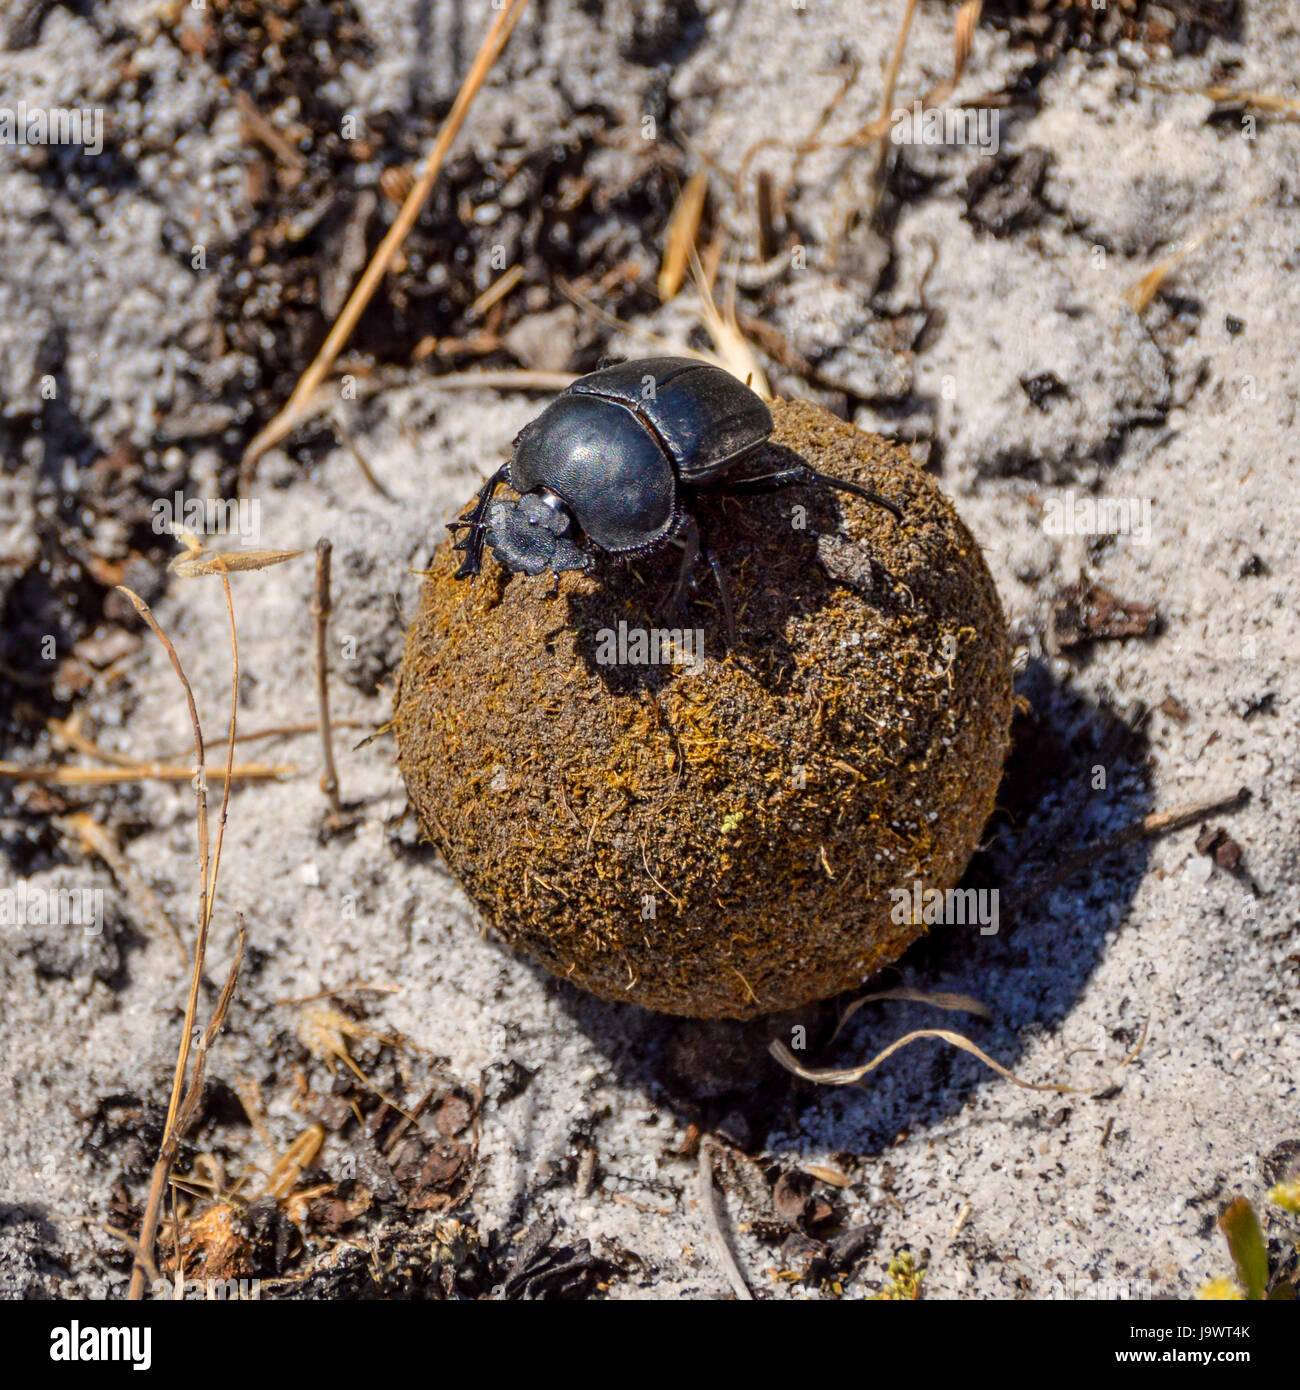 A Green Grooved Dung Beetle on a dungball in Southern AfricaStock Photo